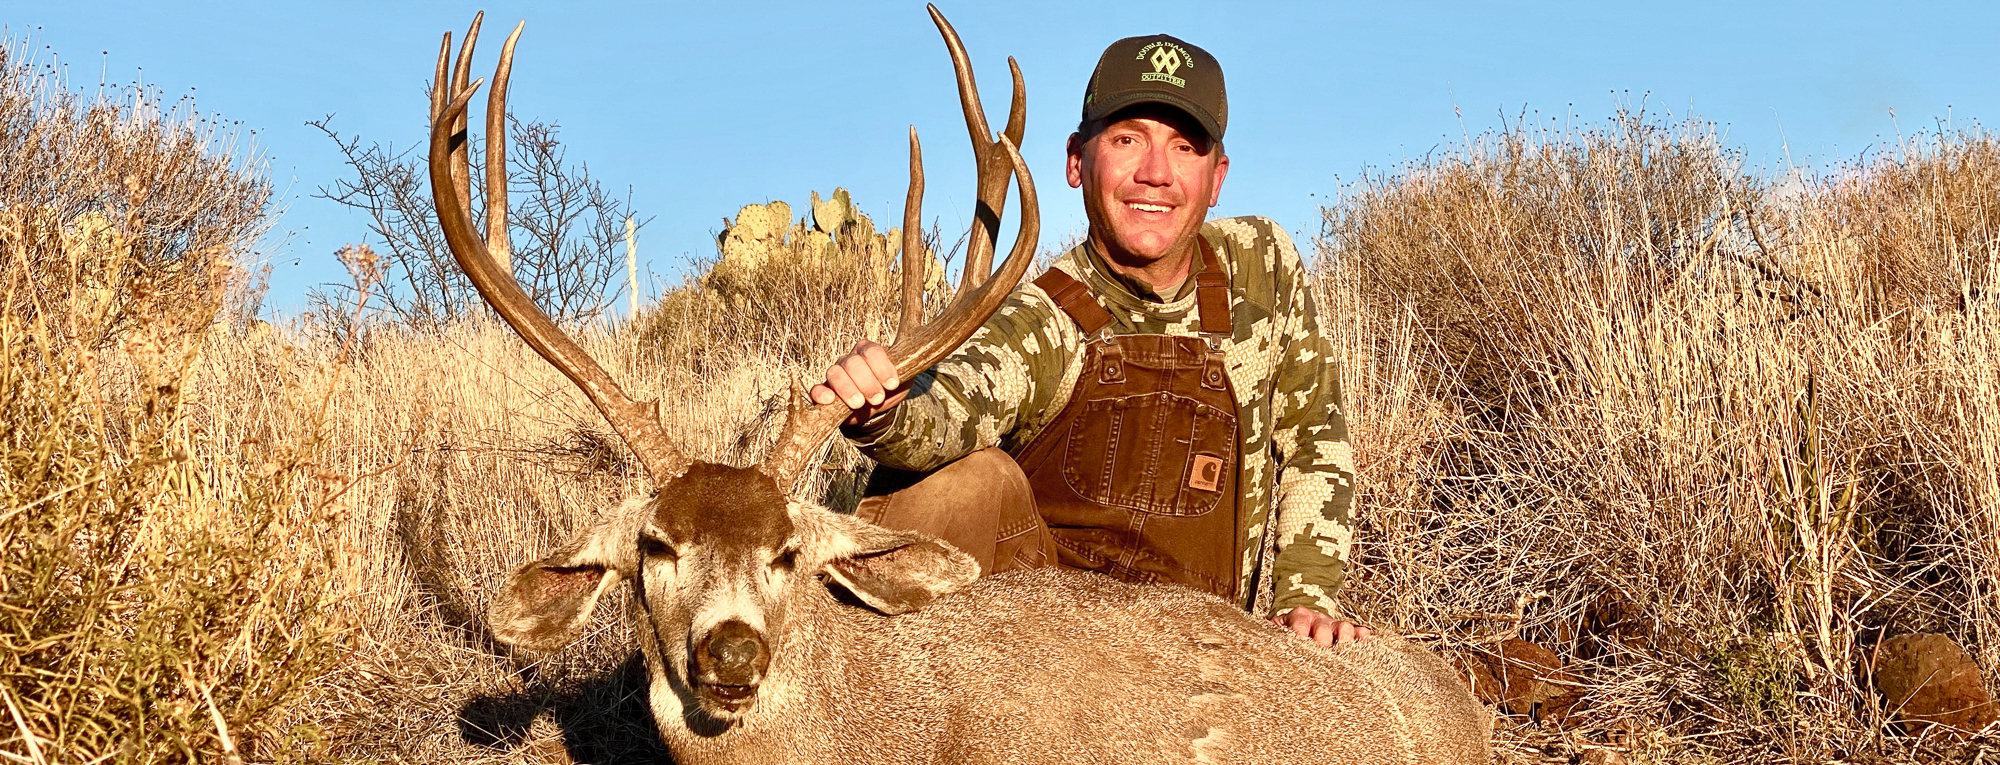 Wes Mundy Hunt Double Diamond Texas Hunting Outfitter with Desert Mule Deer Hunt